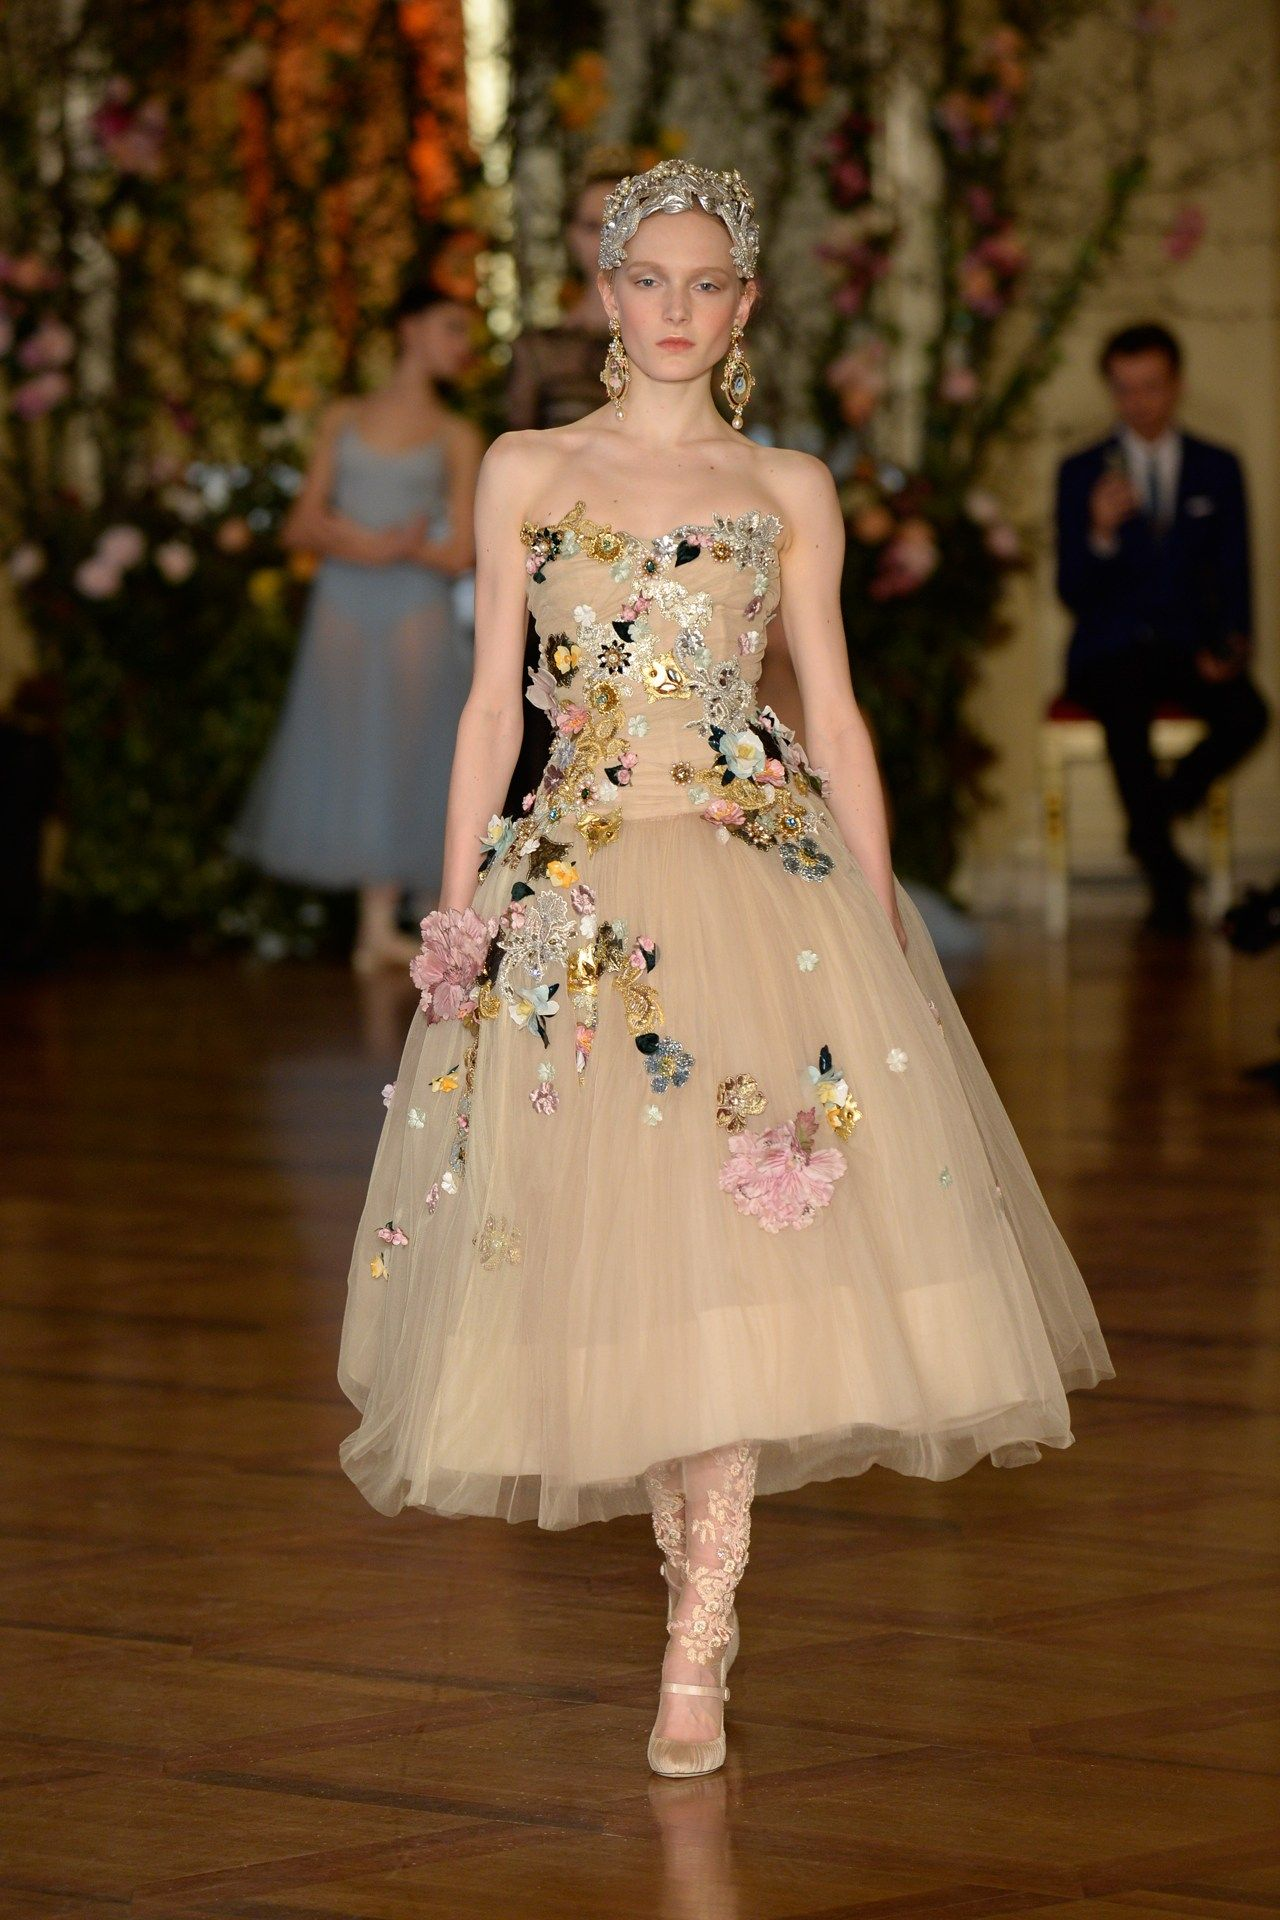 063f6f83eef2 See the Dolce & Gabbana spring/summer 2015 couture collection Μόδα Της  Πασαρέλας, Υψηλή